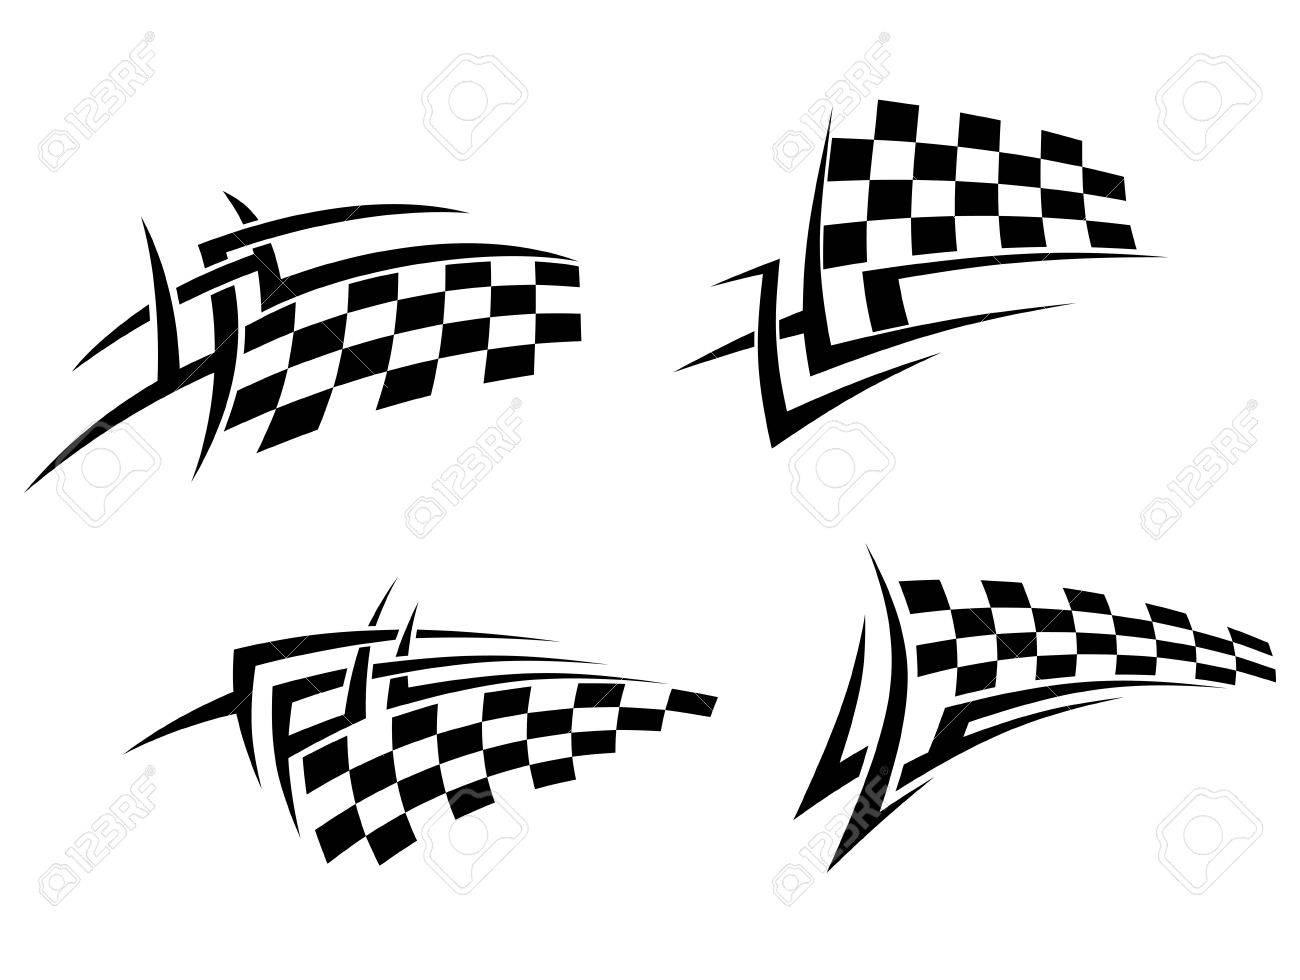 Tribal-Tattoos 20325238-Tribal-tattoos-set-with-racing-flag-for-sport-design-Stock-Vector